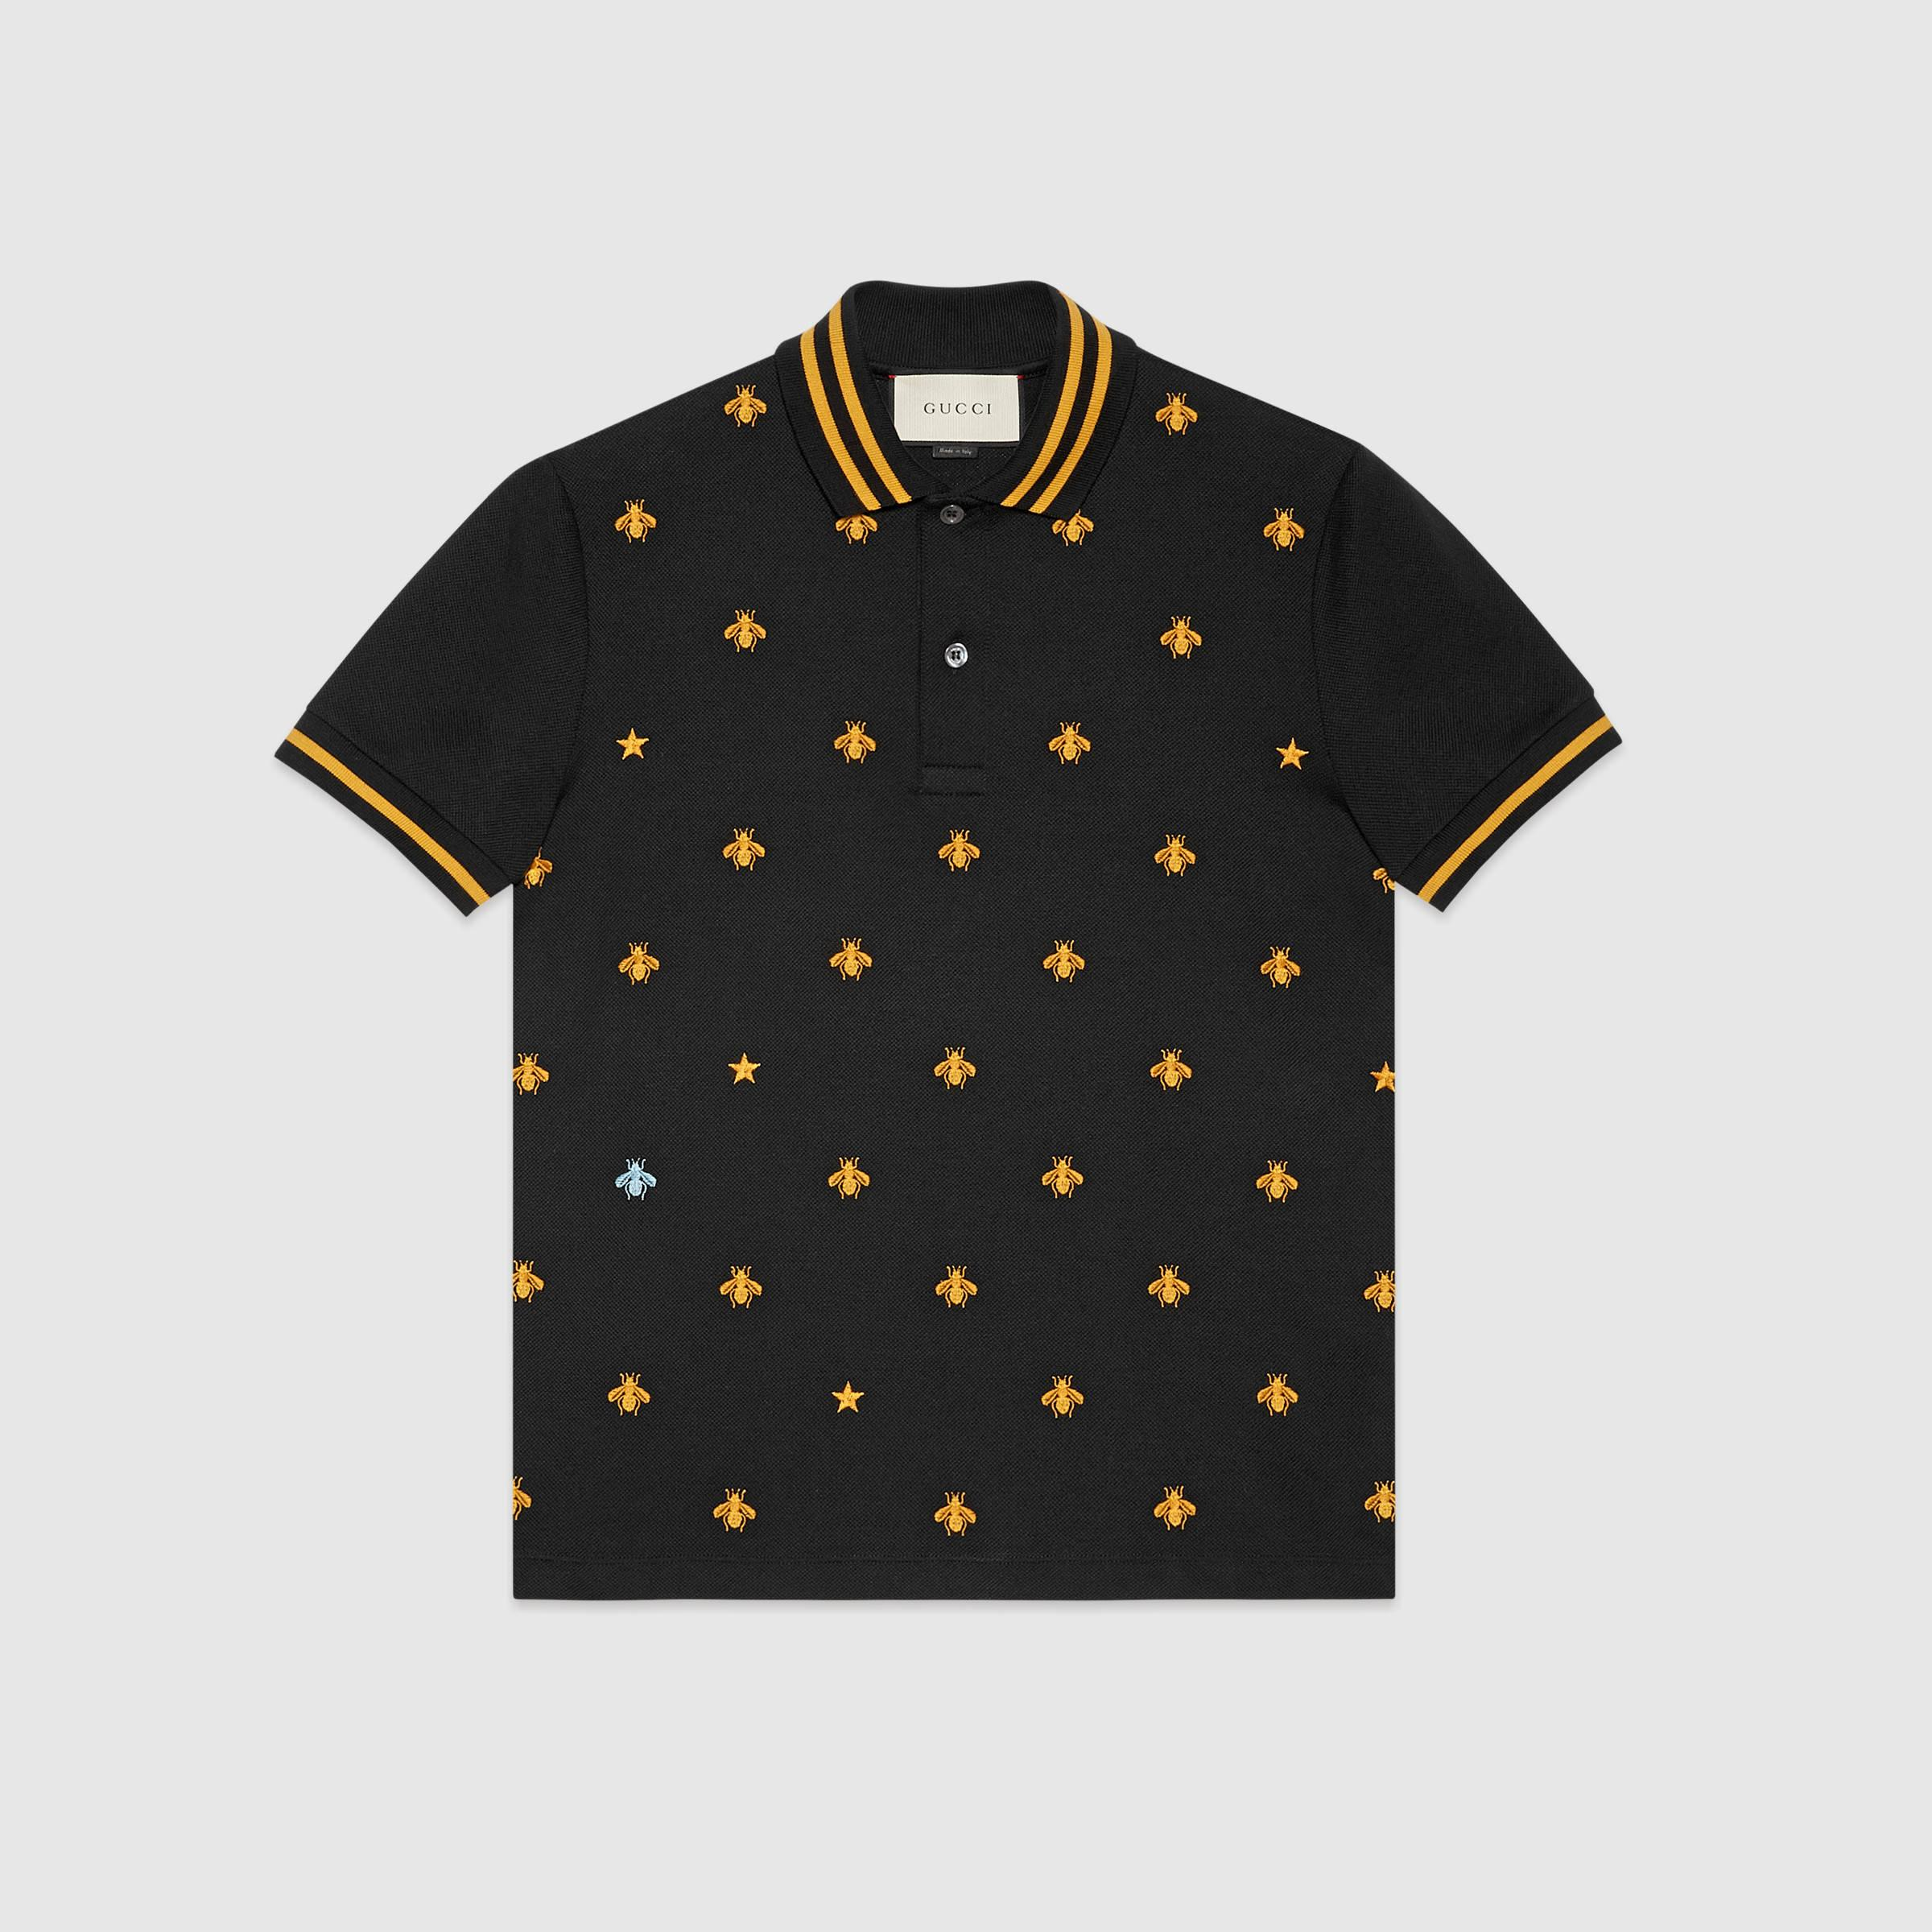 0014643fec8 Lyst - Gucci Cotton Polo With Bees And Stars in Black for Men Gucci Logo-embroidered  Polo Shirt ...